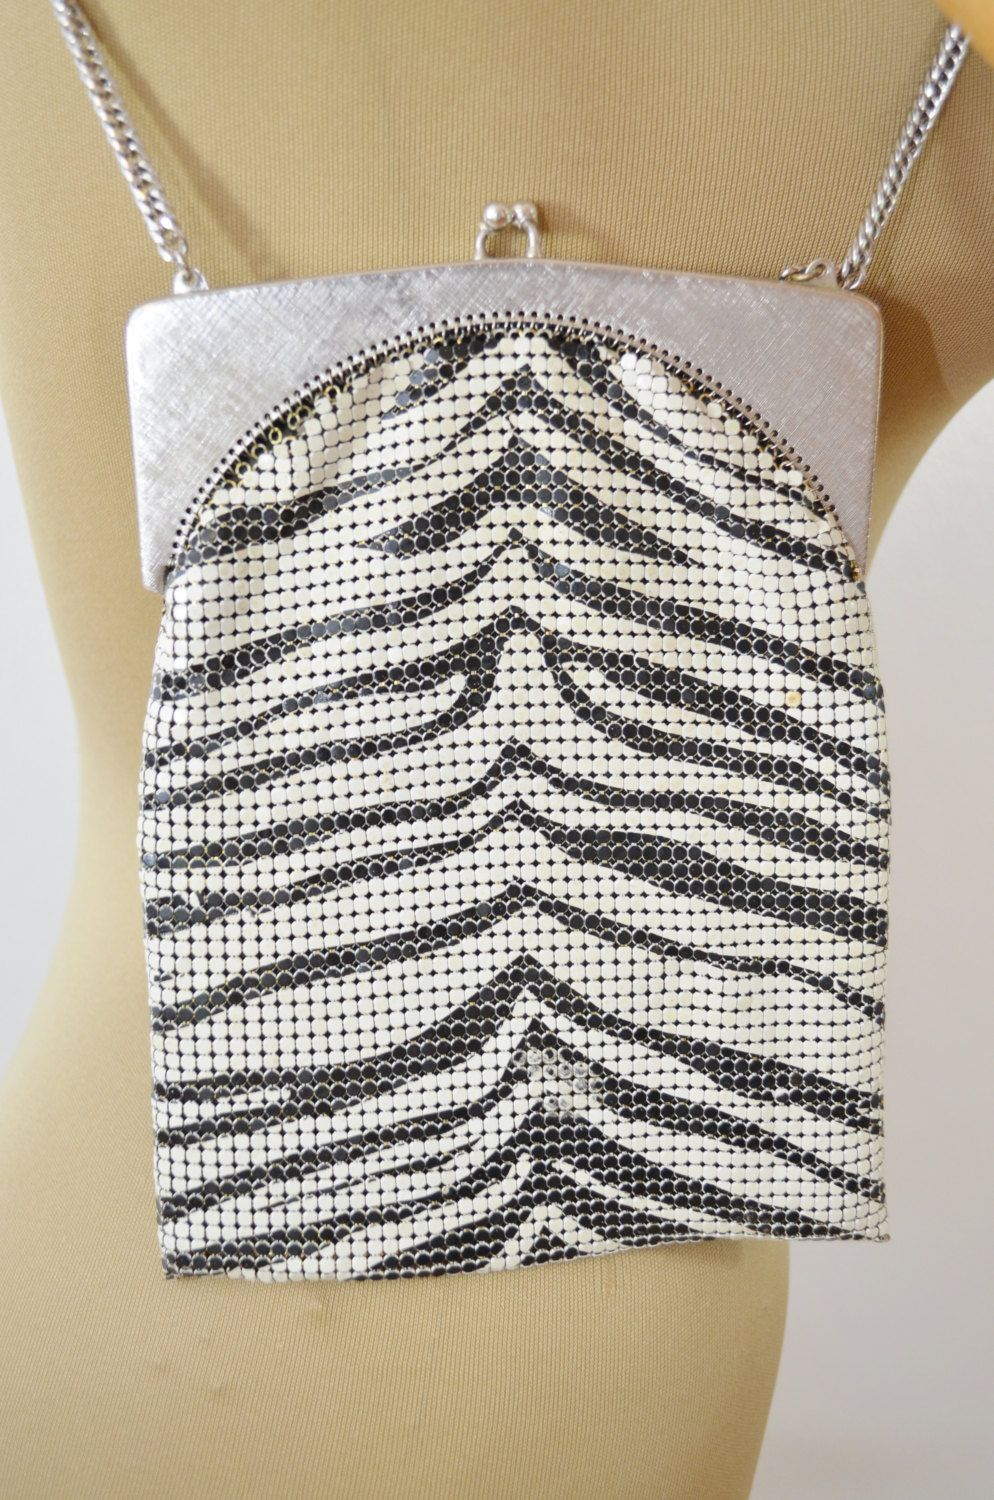 6e4e5565baed5 Vintage Zebra Print Mesh Purse by Whiting and Davis with Long Chain Strap  Art Deco by ilovevintagestuff on Etsy